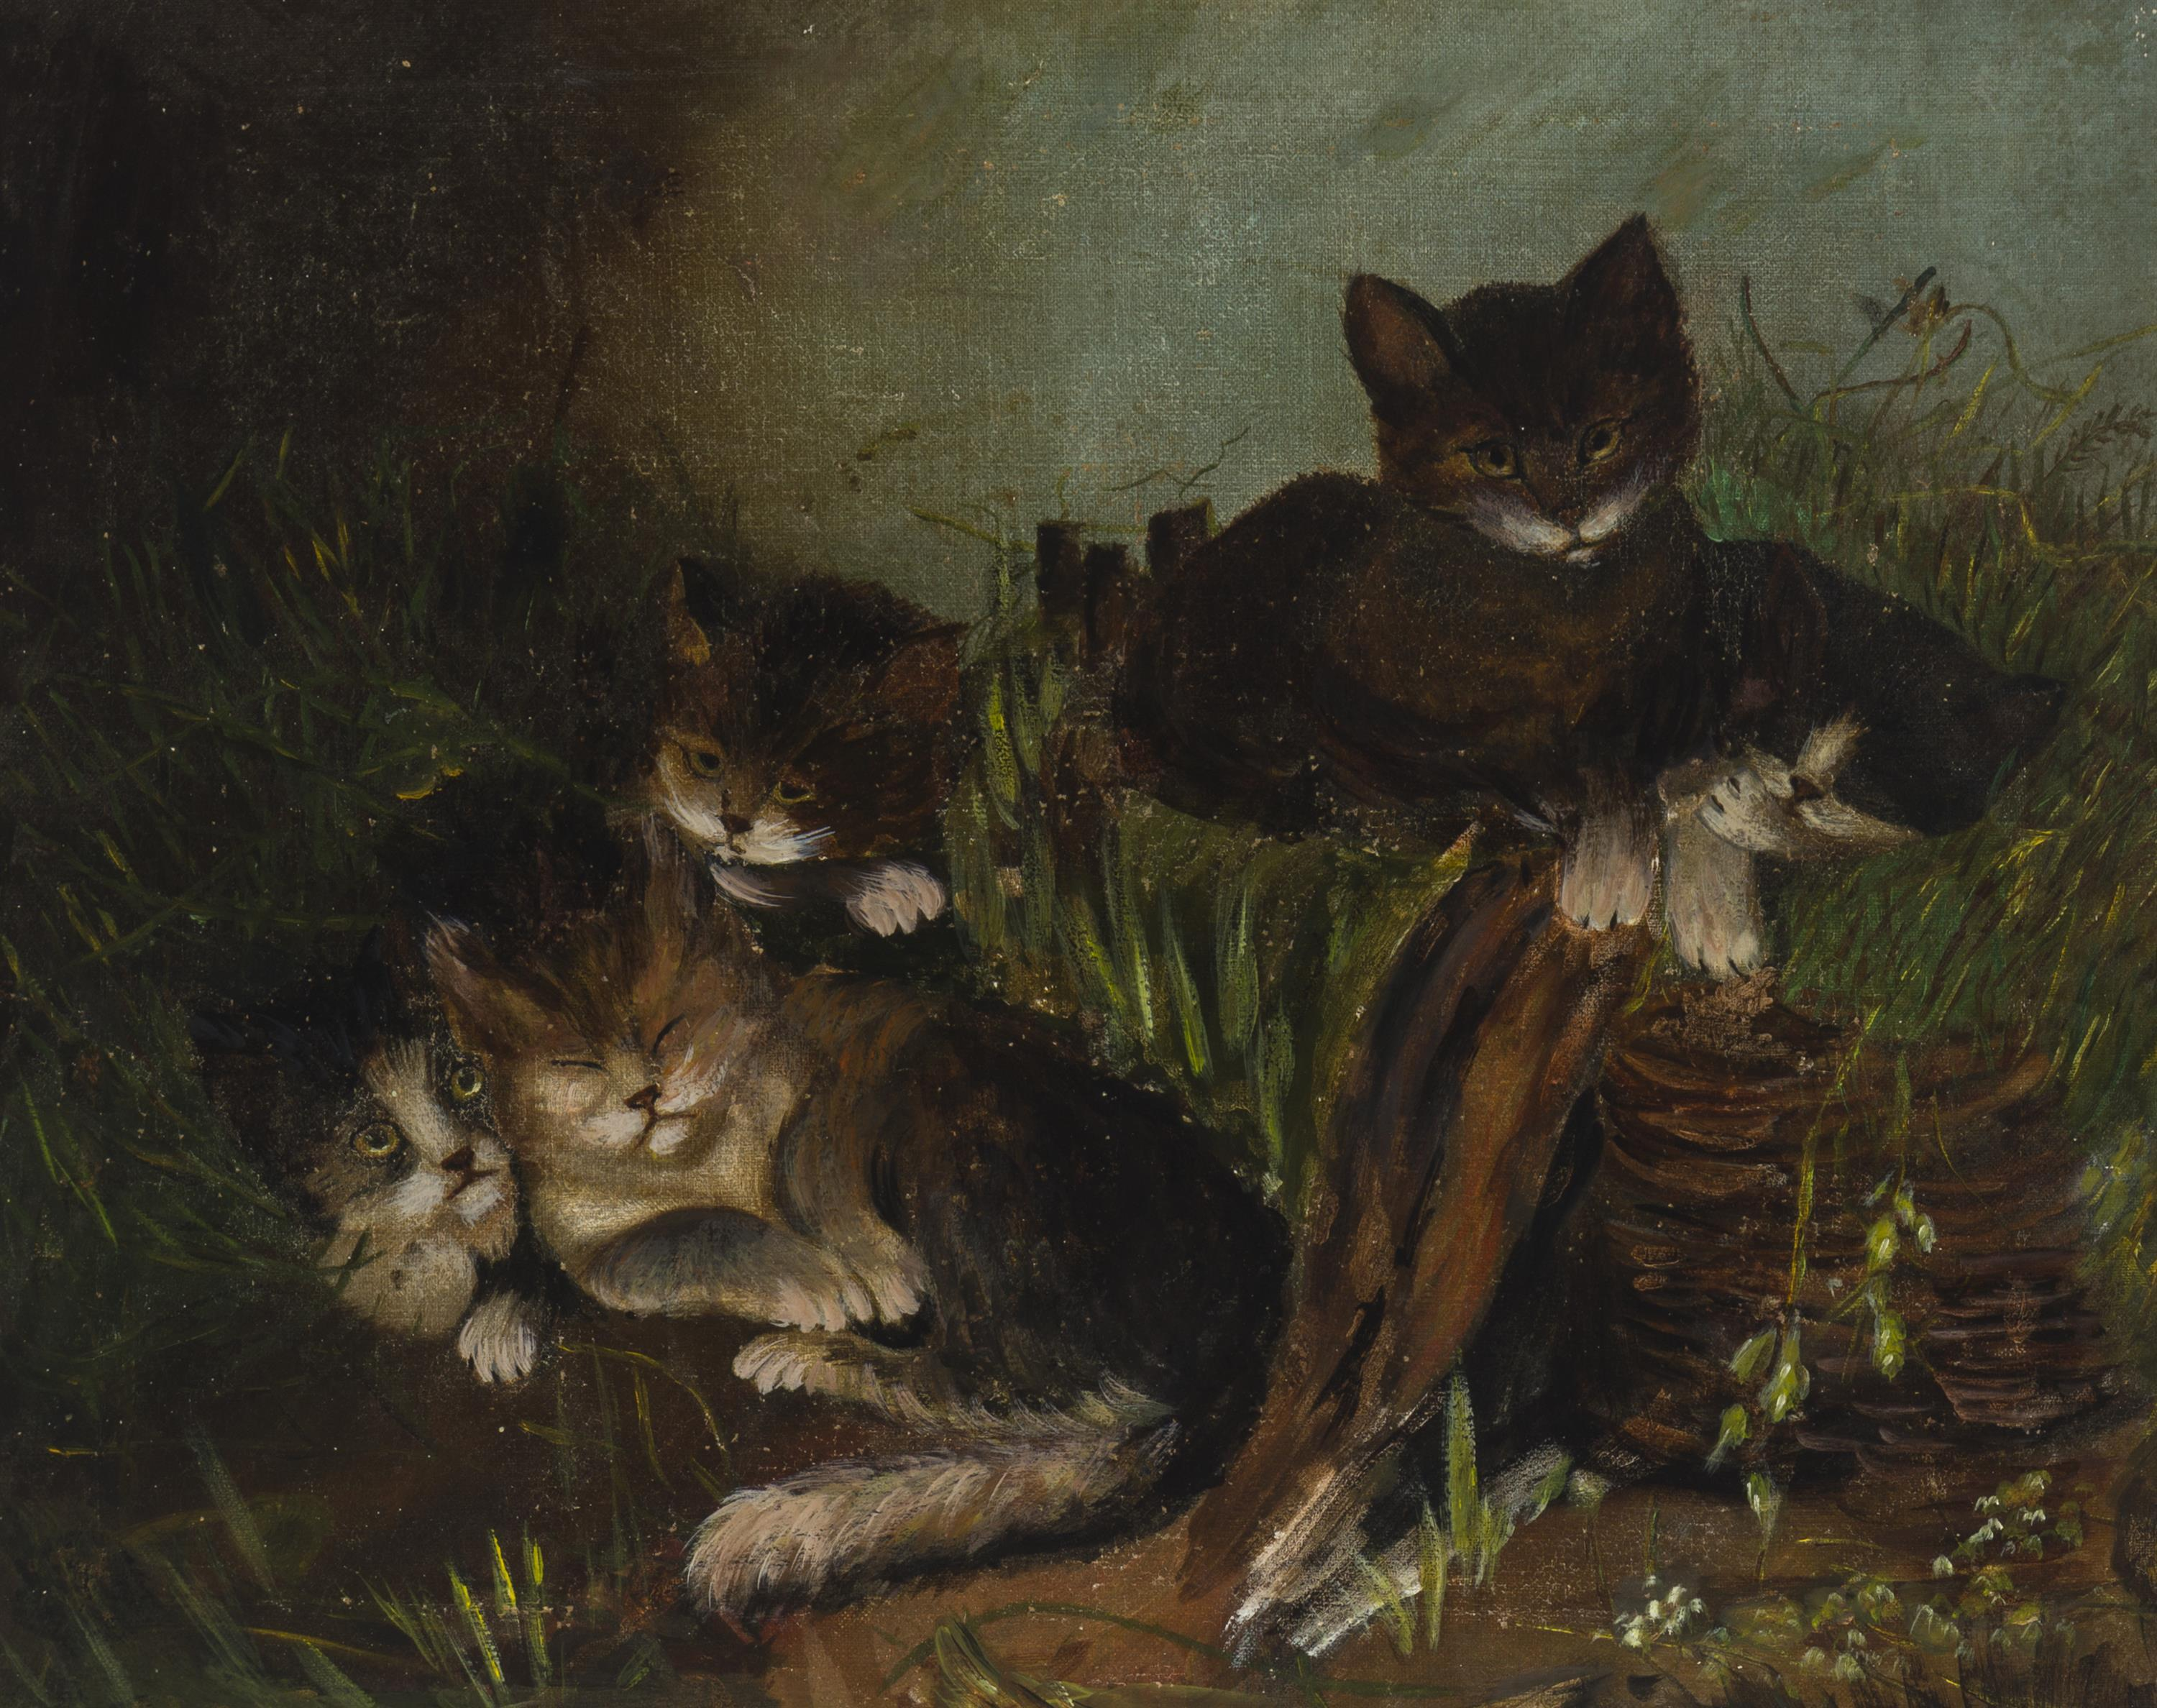 Five cats in a field